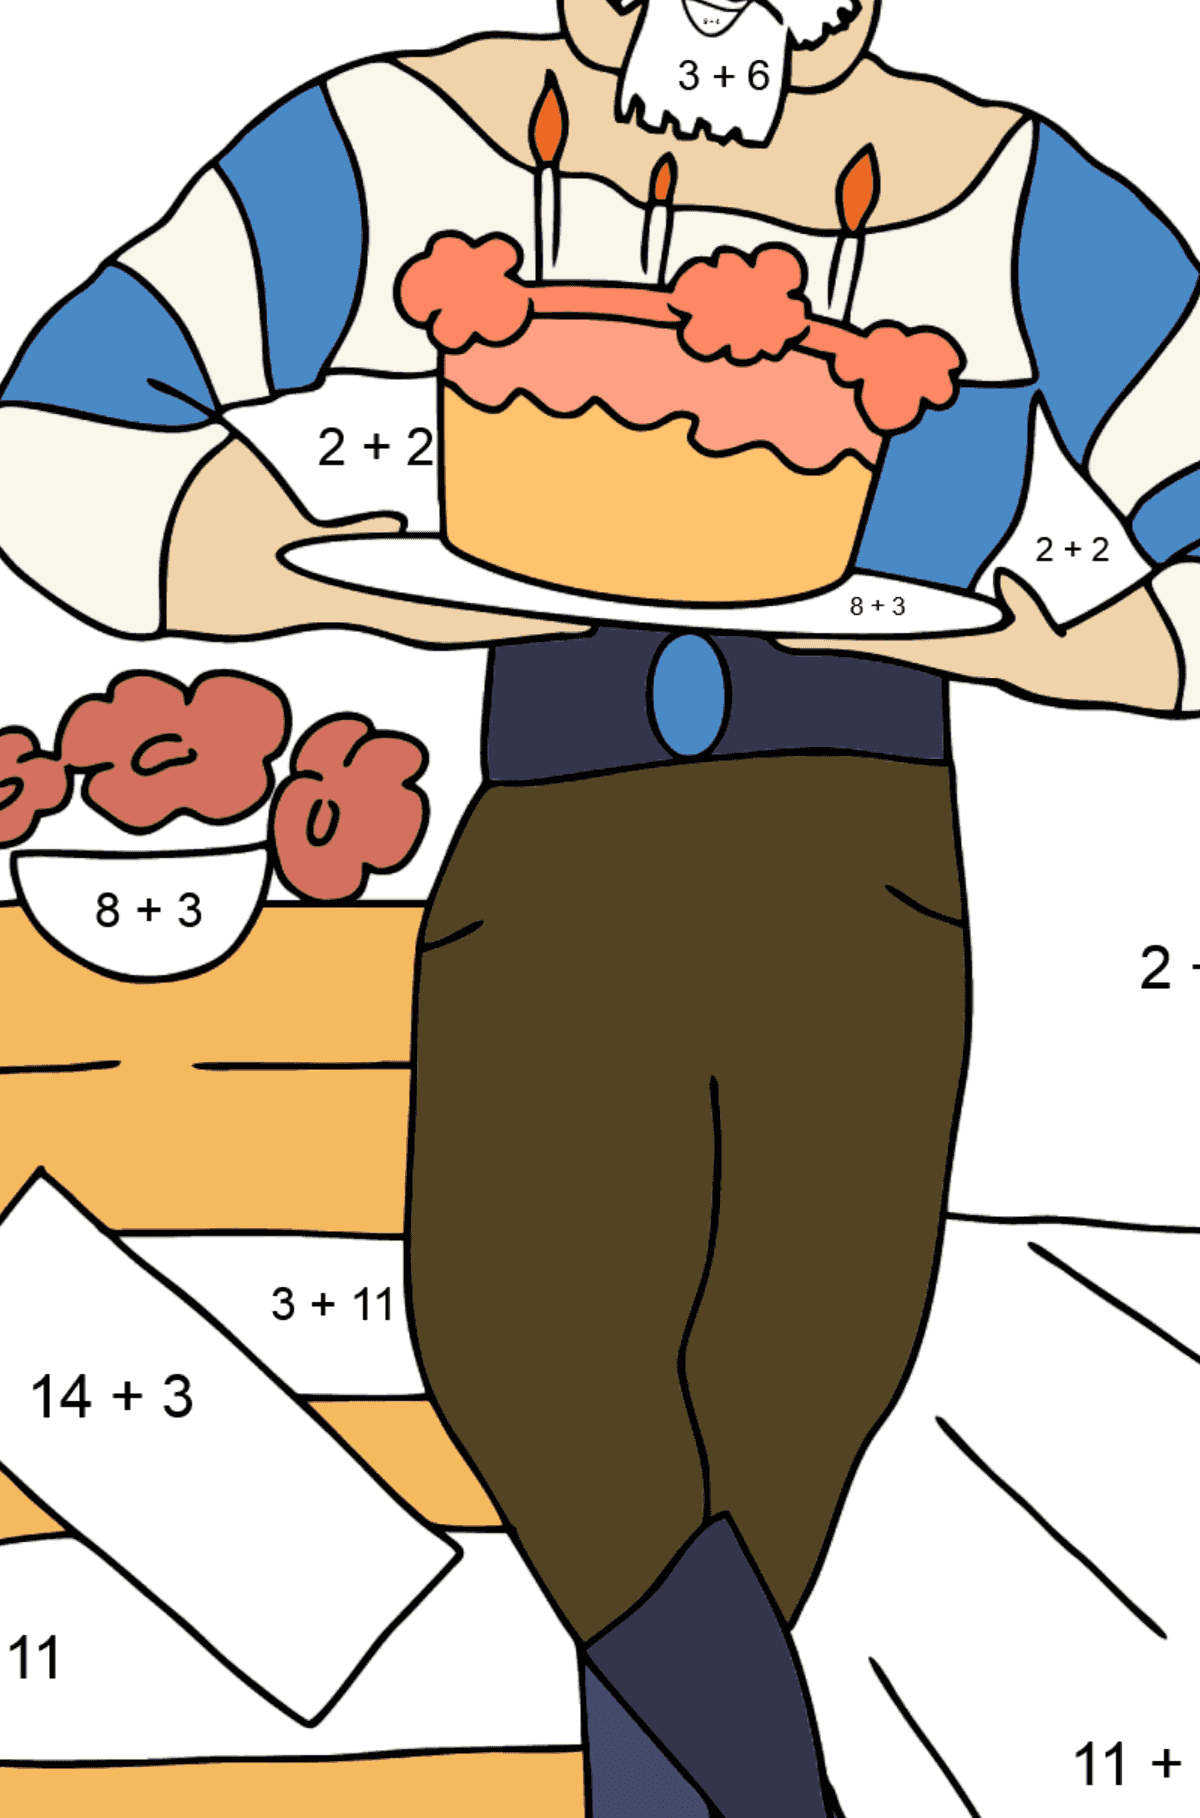 Coloring Page - A Pirate with Cake - Math Coloring - Addition for Kids